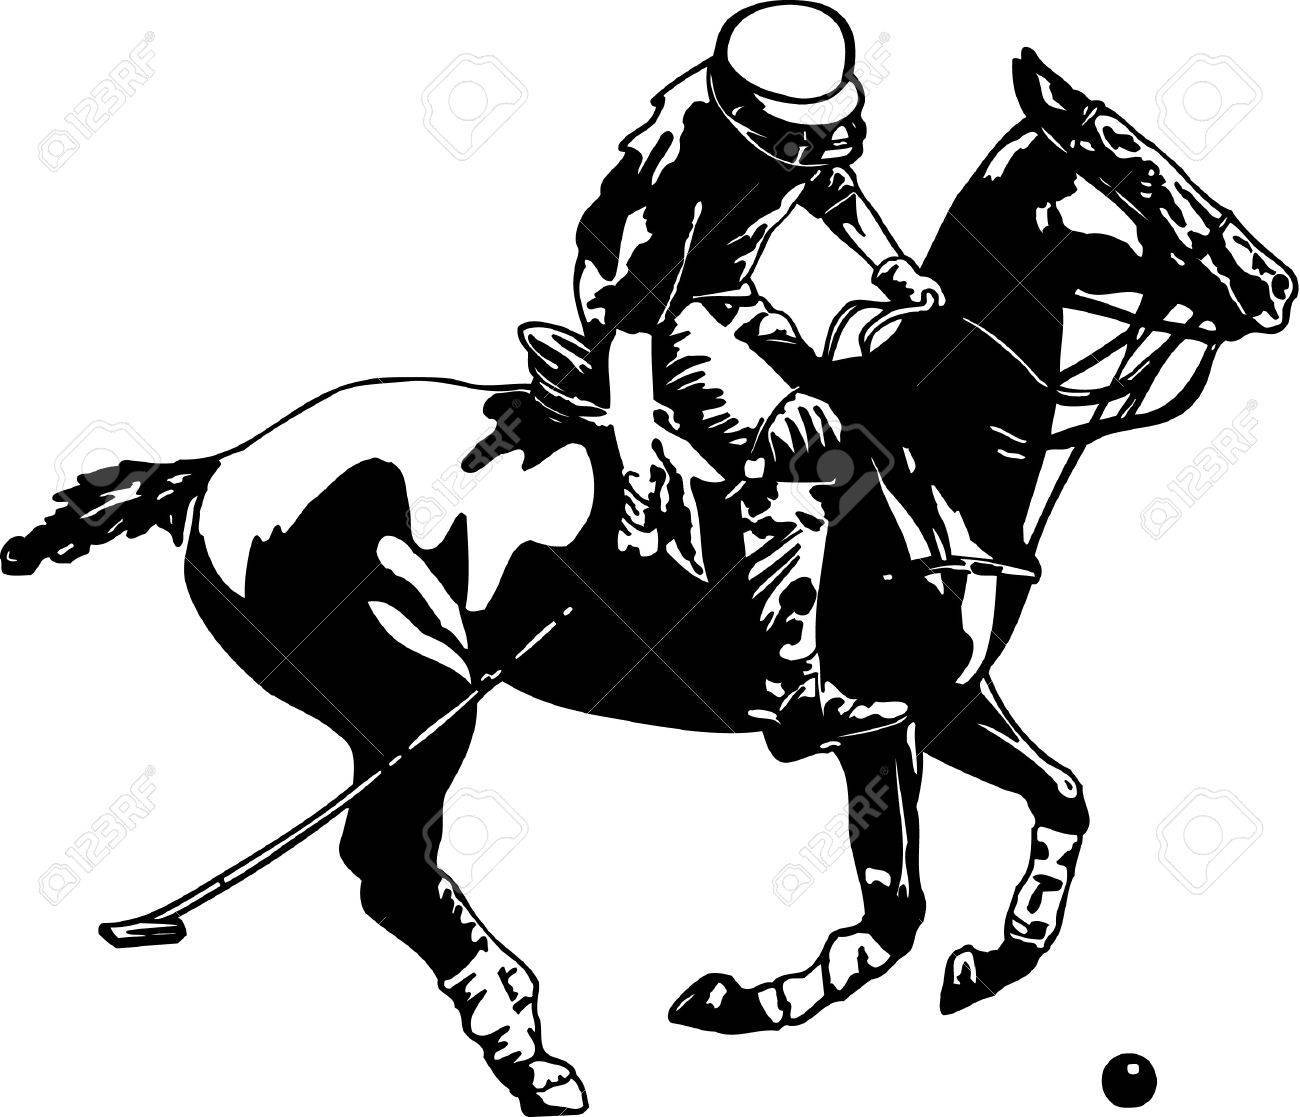 Polocrosse clipart clipart stock Polocrosse clipart » Clipart Portal clipart stock